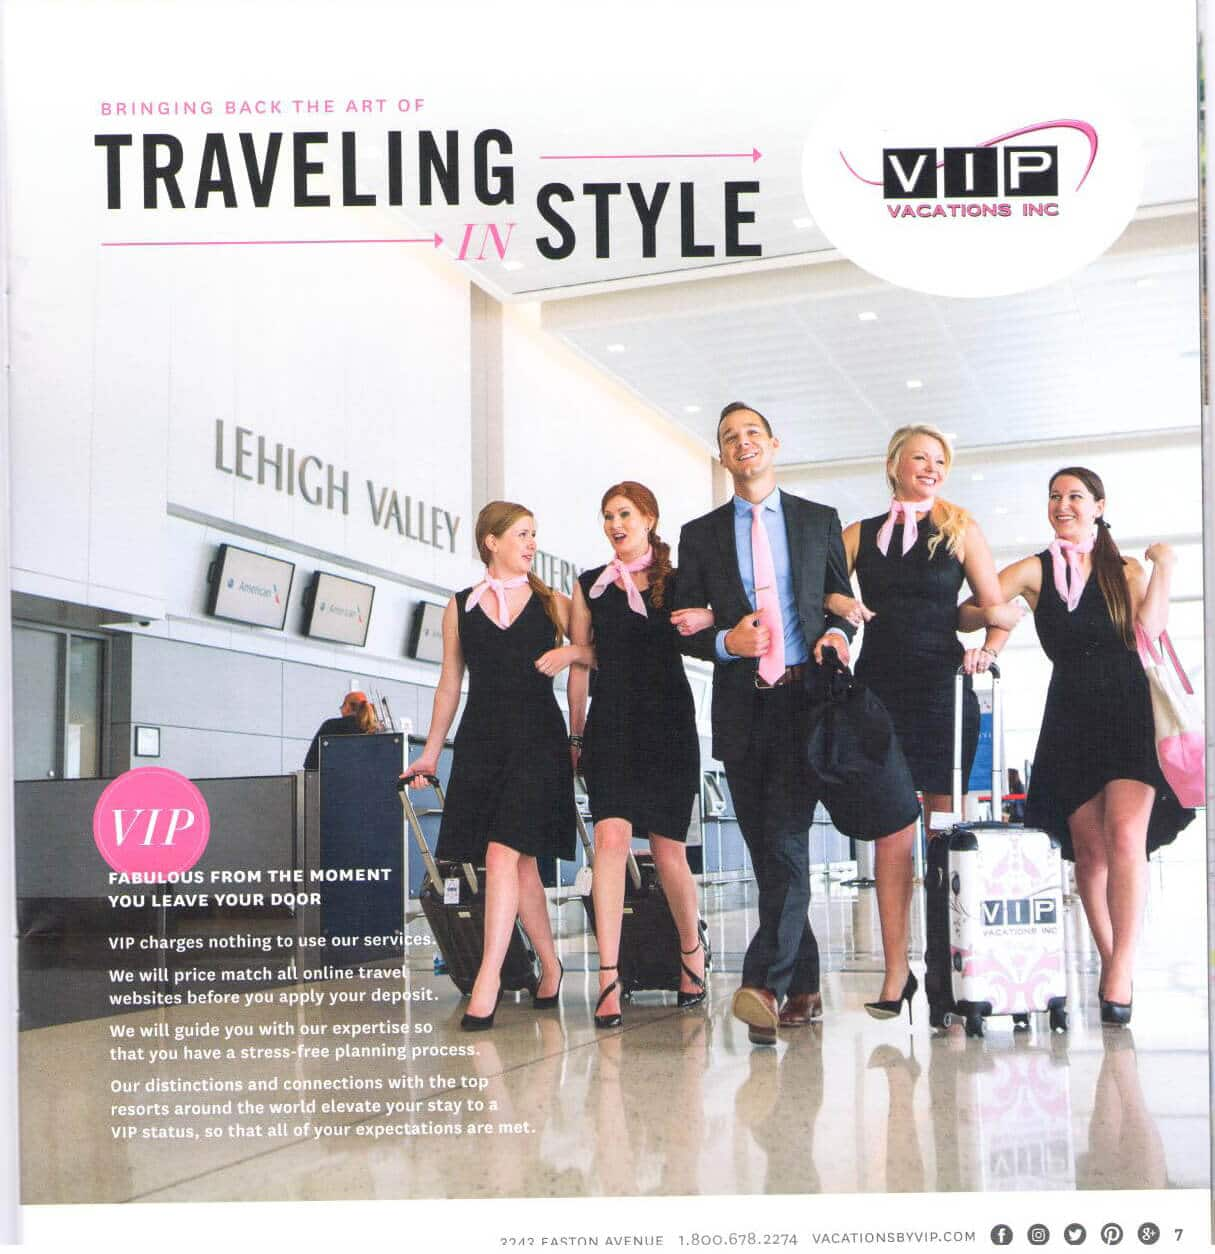 FIG Magazine VIP Vacations Feature | VIP Vacations Inc